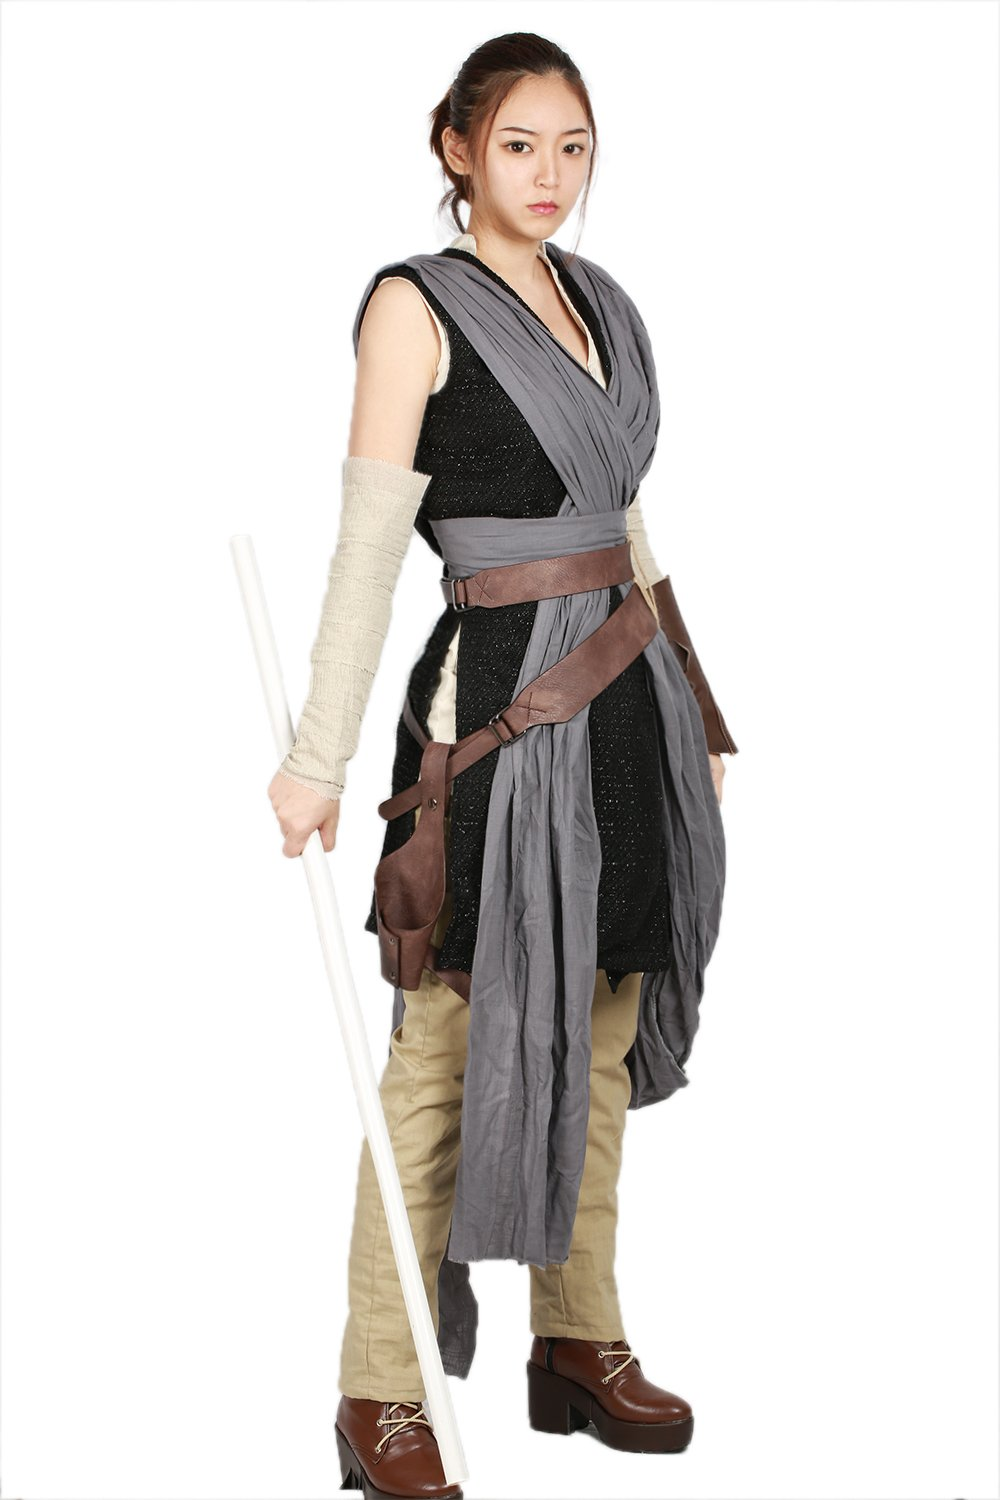 xcoser Rey Costume Deluxe Cool Full Set Tops Belt Tunic Movie Cosplay Women Outfit L by xcoser (Image #2)